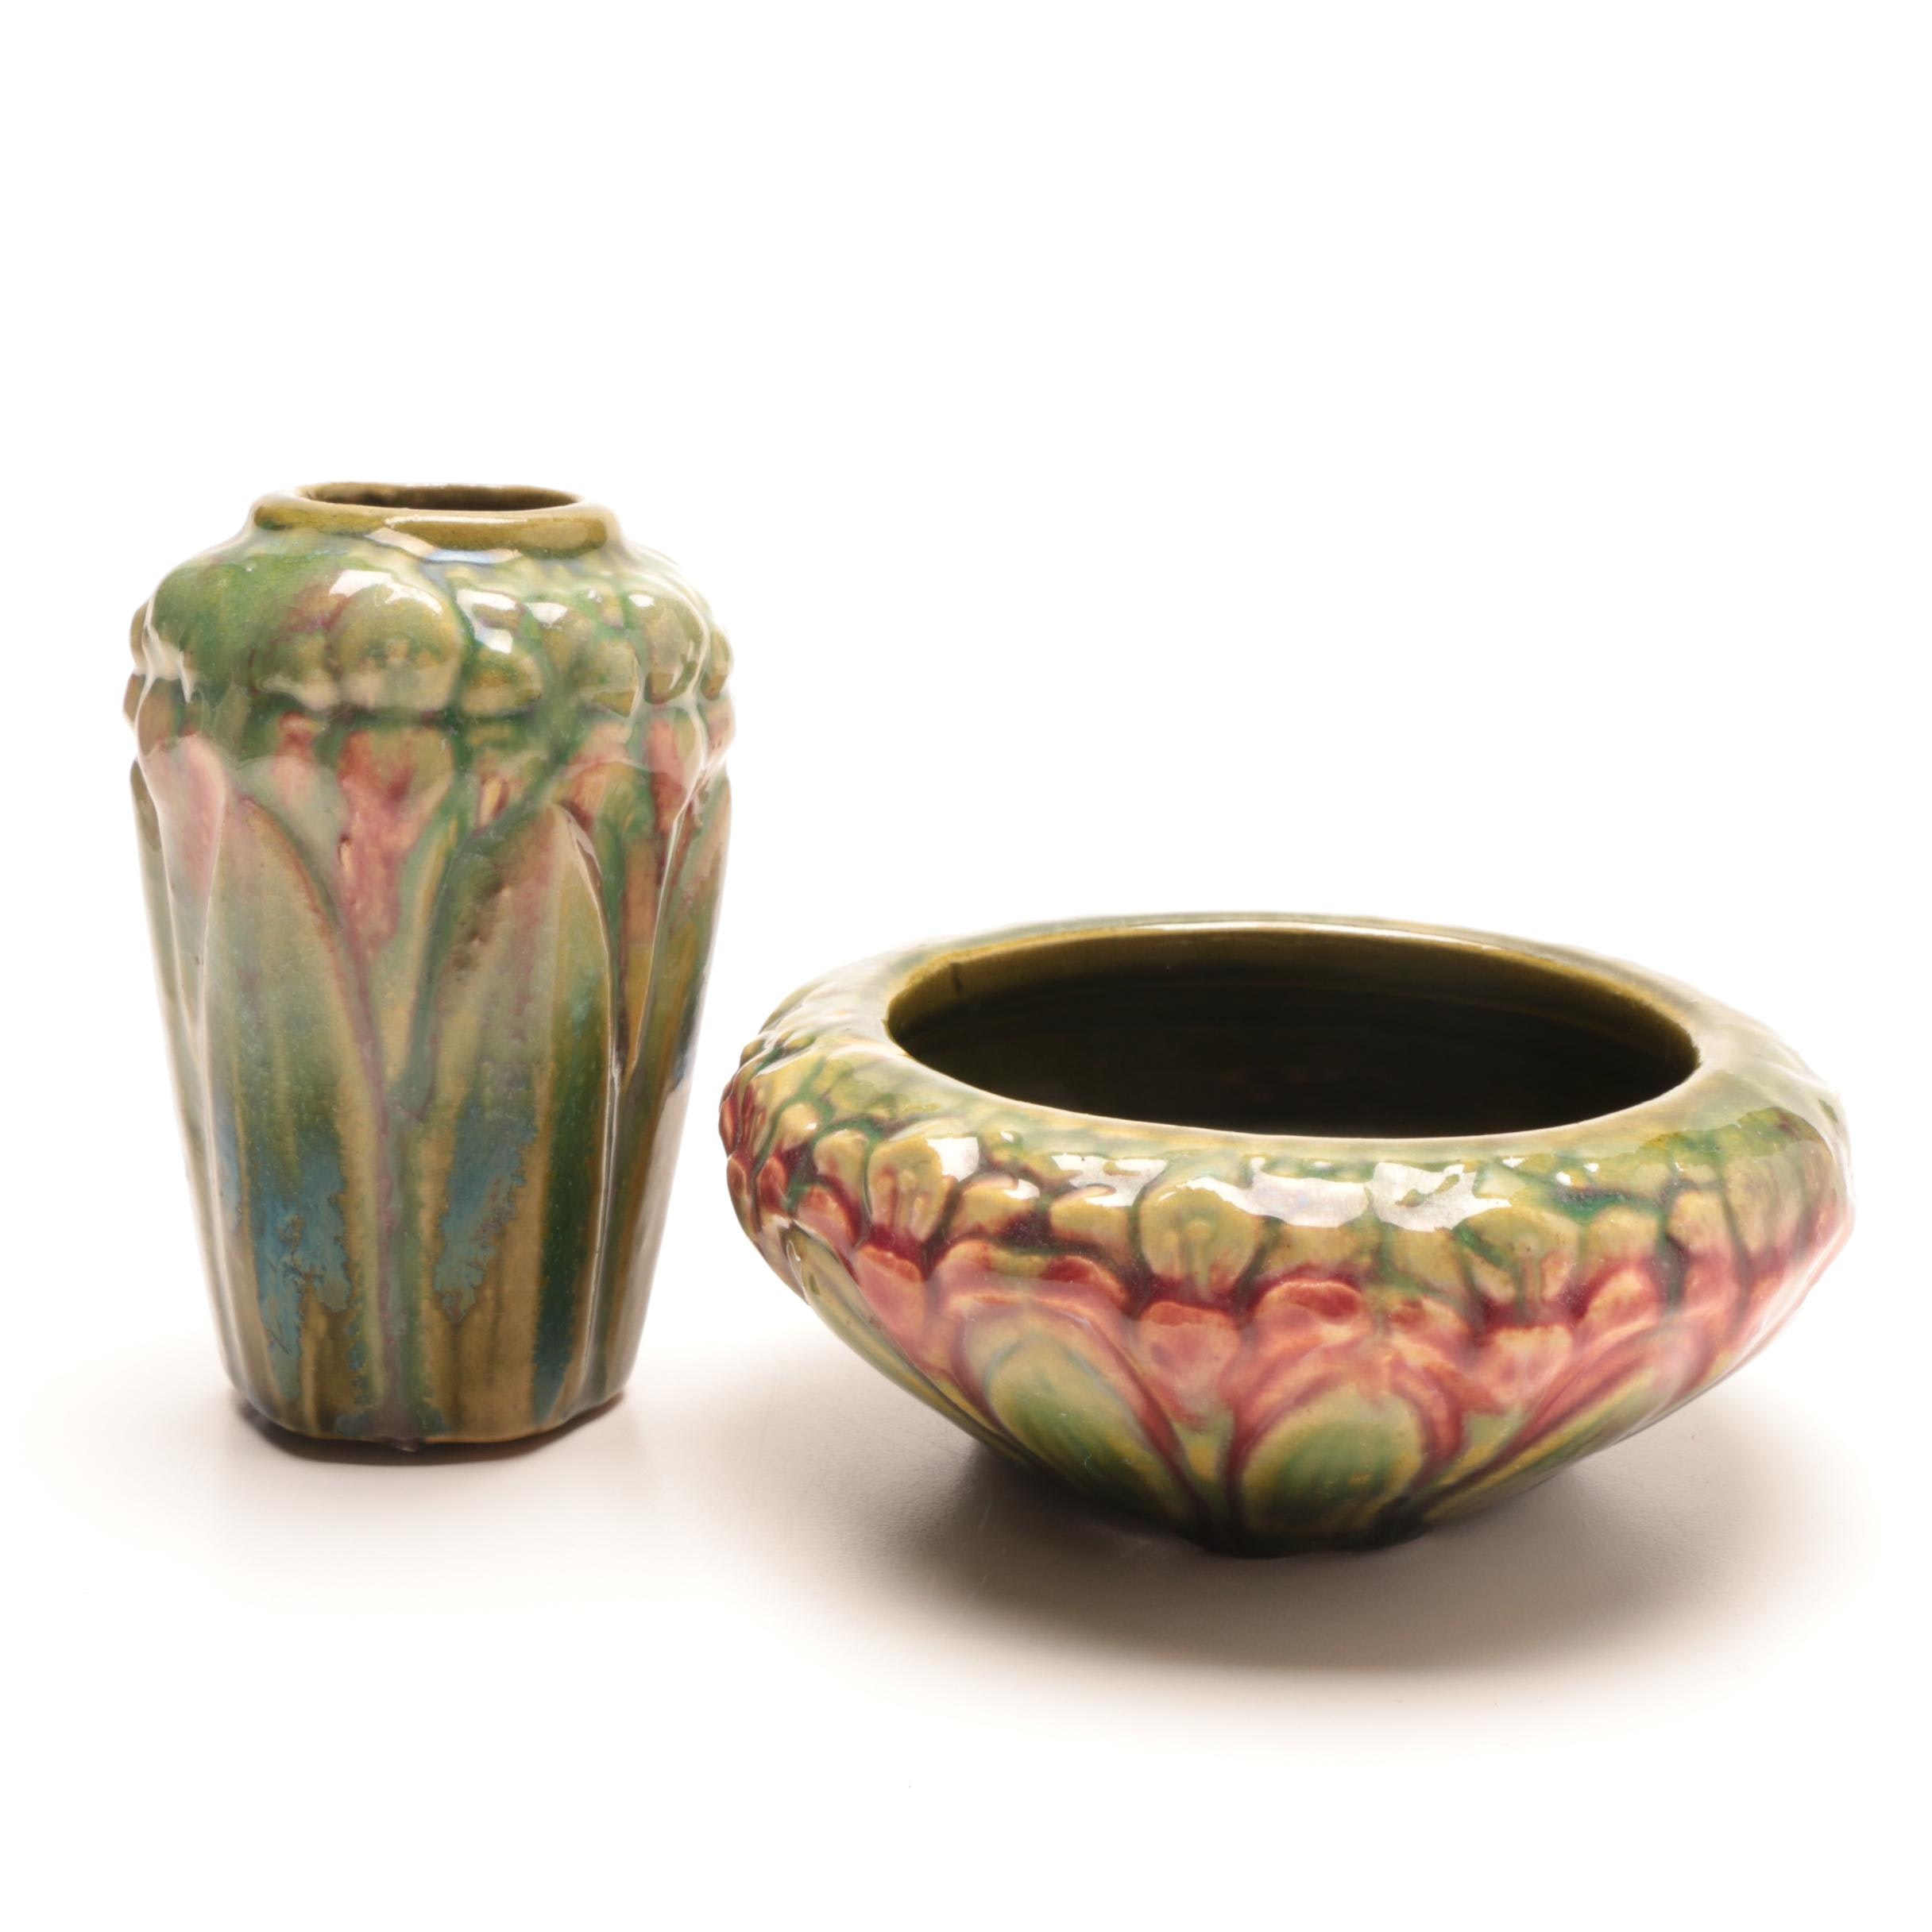 Art Pottery Vase and Matching Bowl Attributed to Peters and Reed